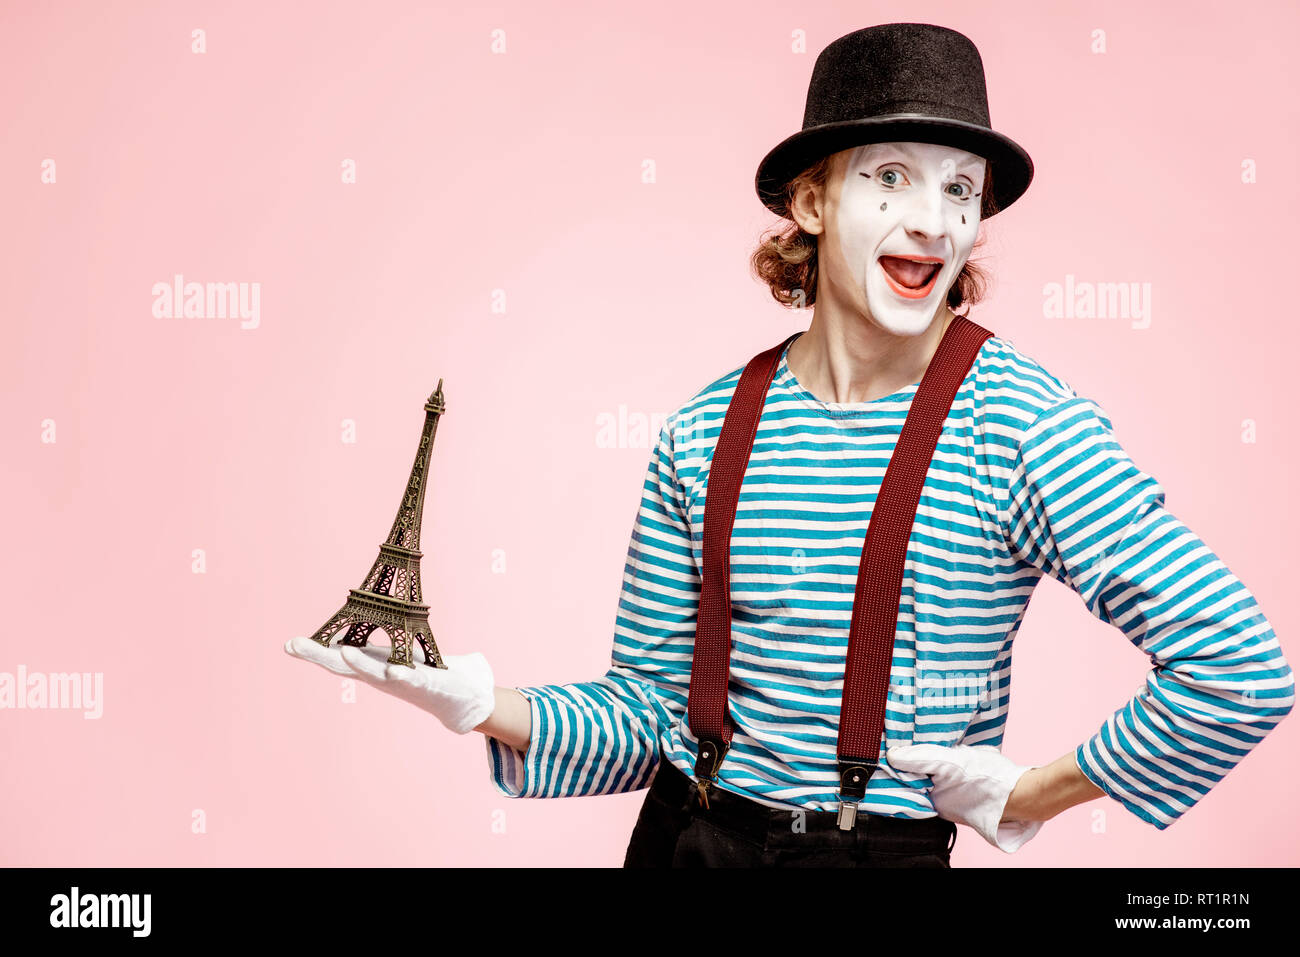 Pantomime with white facial makeup posing with Eiffel tower on the pink background. French mime concept - Stock Image